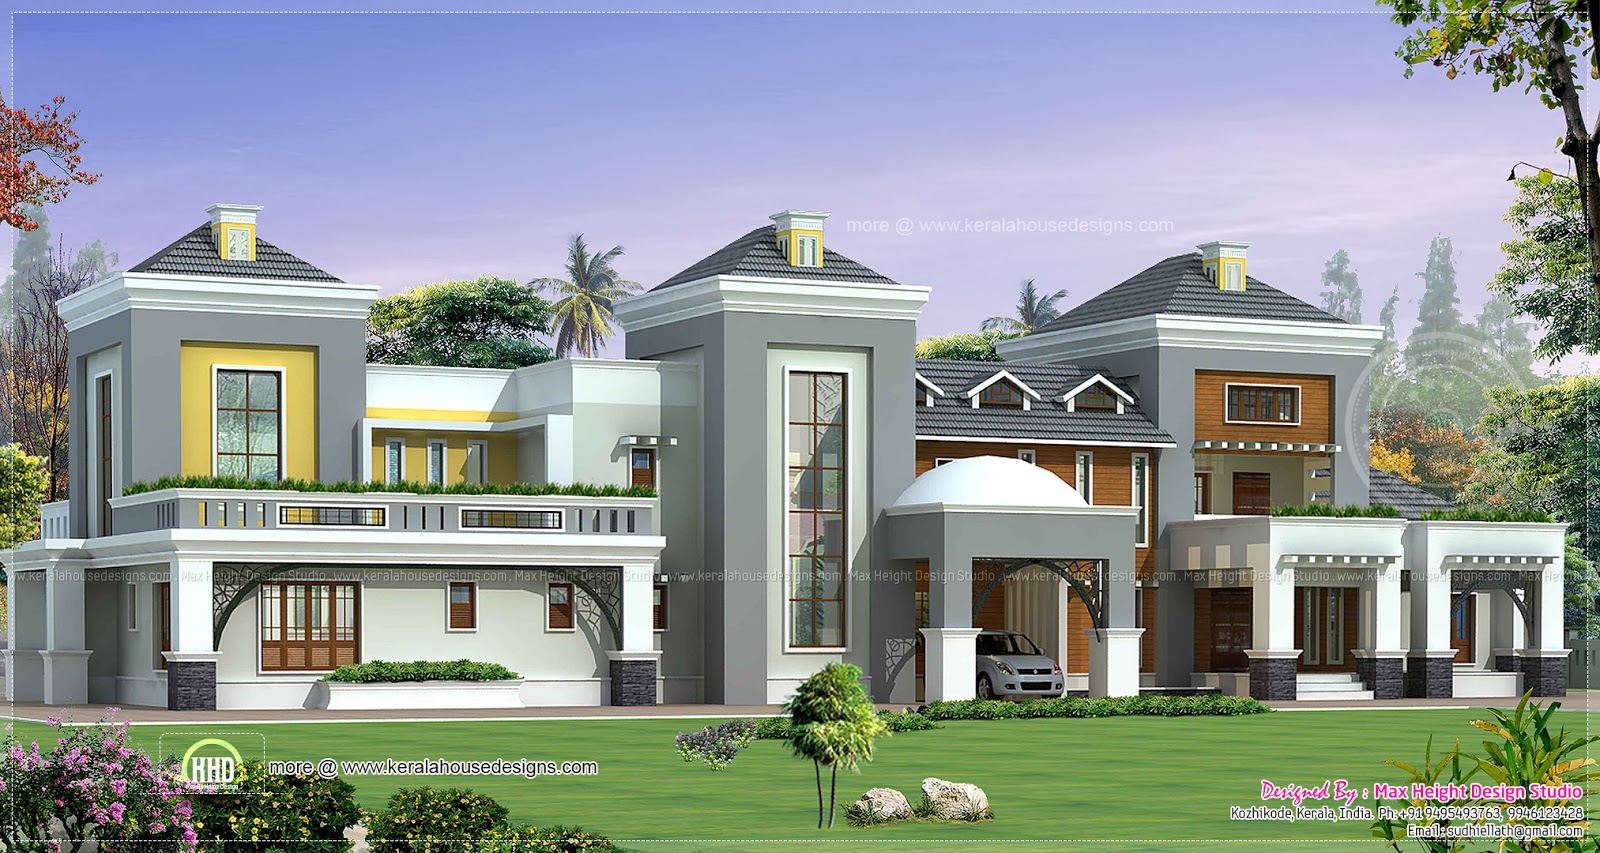 Luxury house plan with photo kerala home design and for Luxury house plans with photos